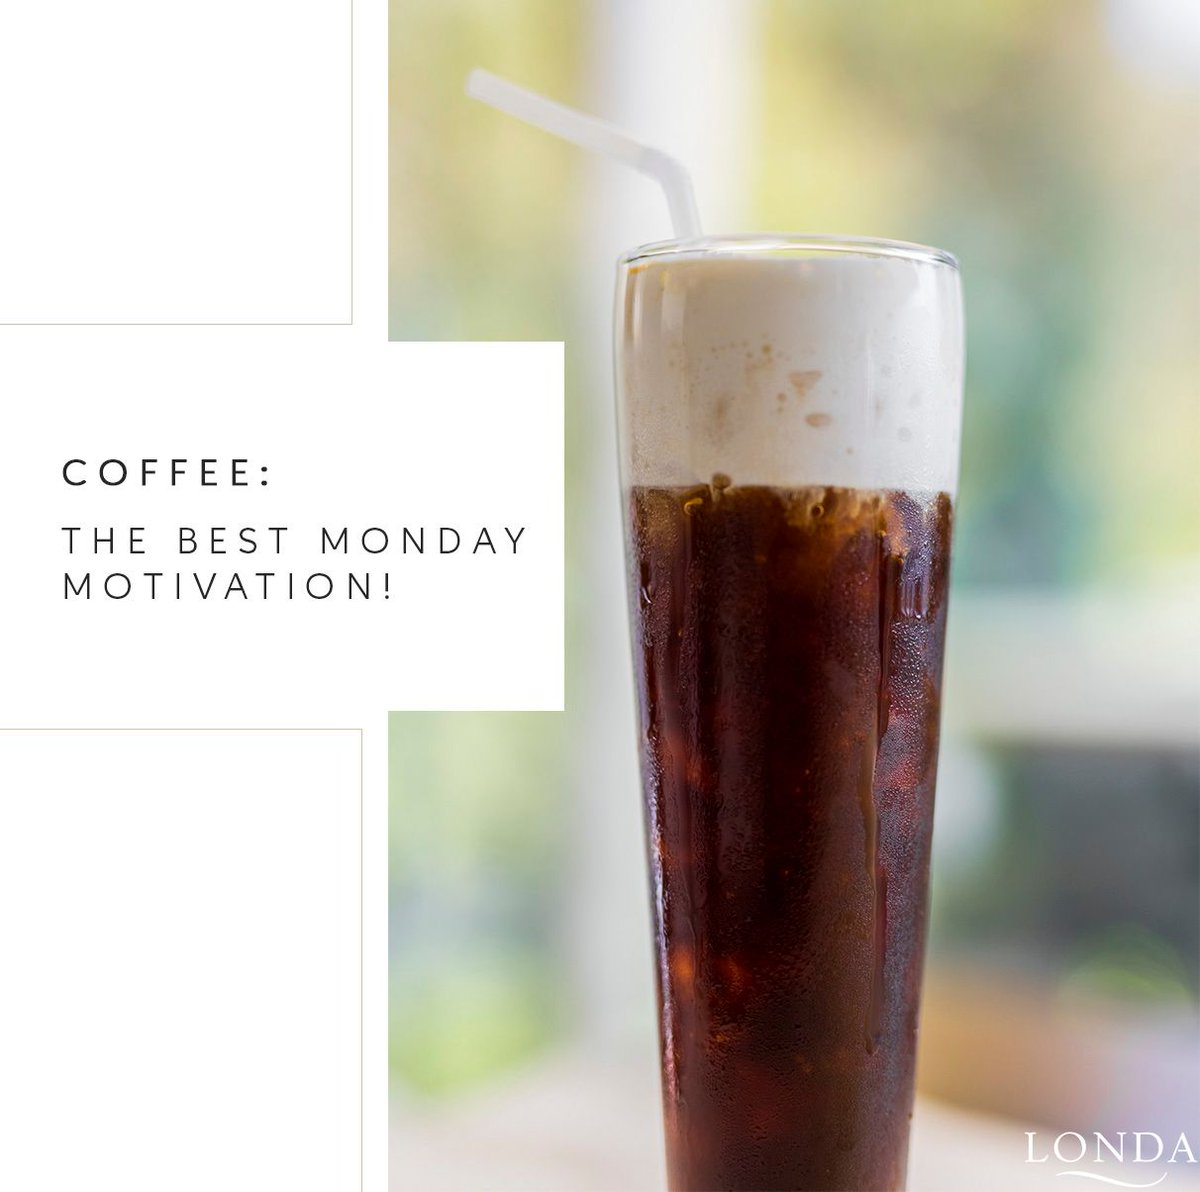 Alright Monday, do your best… We've got guts, stubbornness and a whole lot of quality, strong coffee… Bring it ON! #londahotel #londabeachhotel #Monday #coffee #limassol #cyprus #hotelsinlimassol #strongcoffee #besafe #bringiton #doyourbest #stayhealthy #goodmorning https://t.co/cfJl5cr5wg